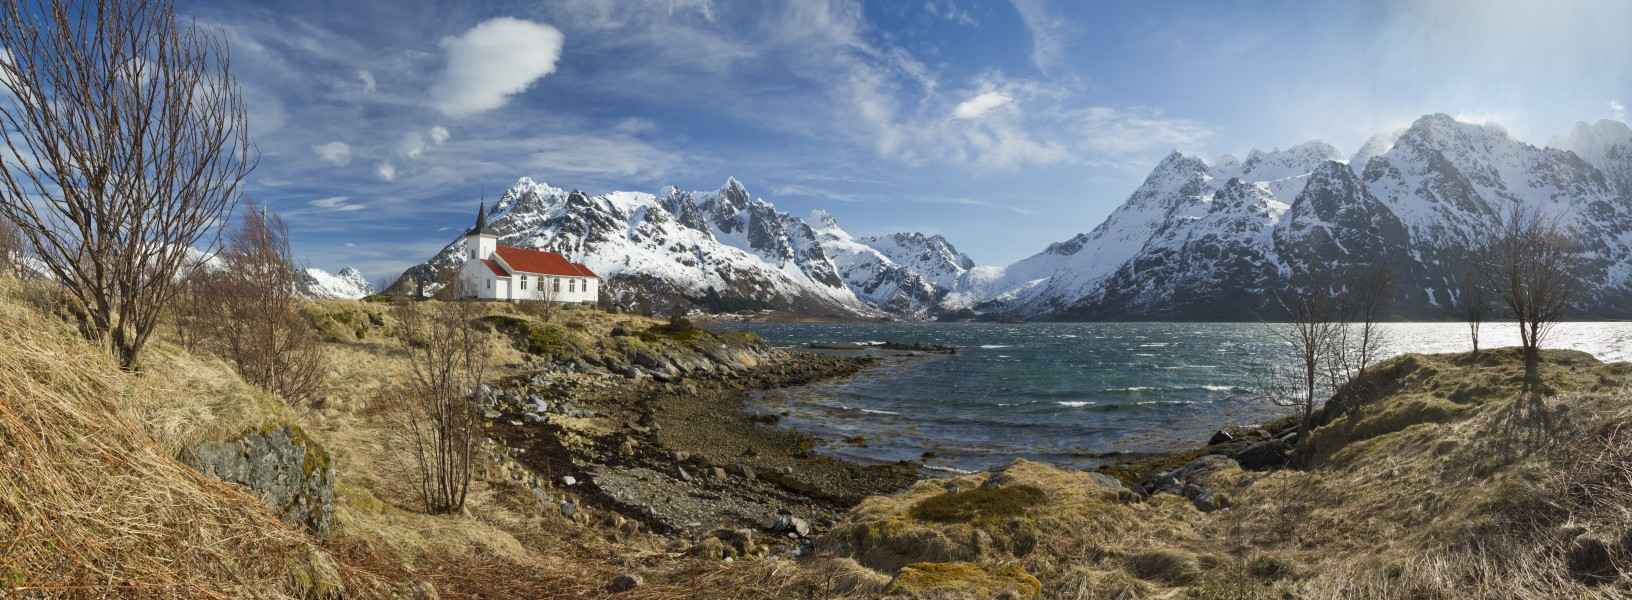 A View to Austnesfjorden at Sildpollnes Church, Austvågøya, Lofoten, Norway, 2015 April